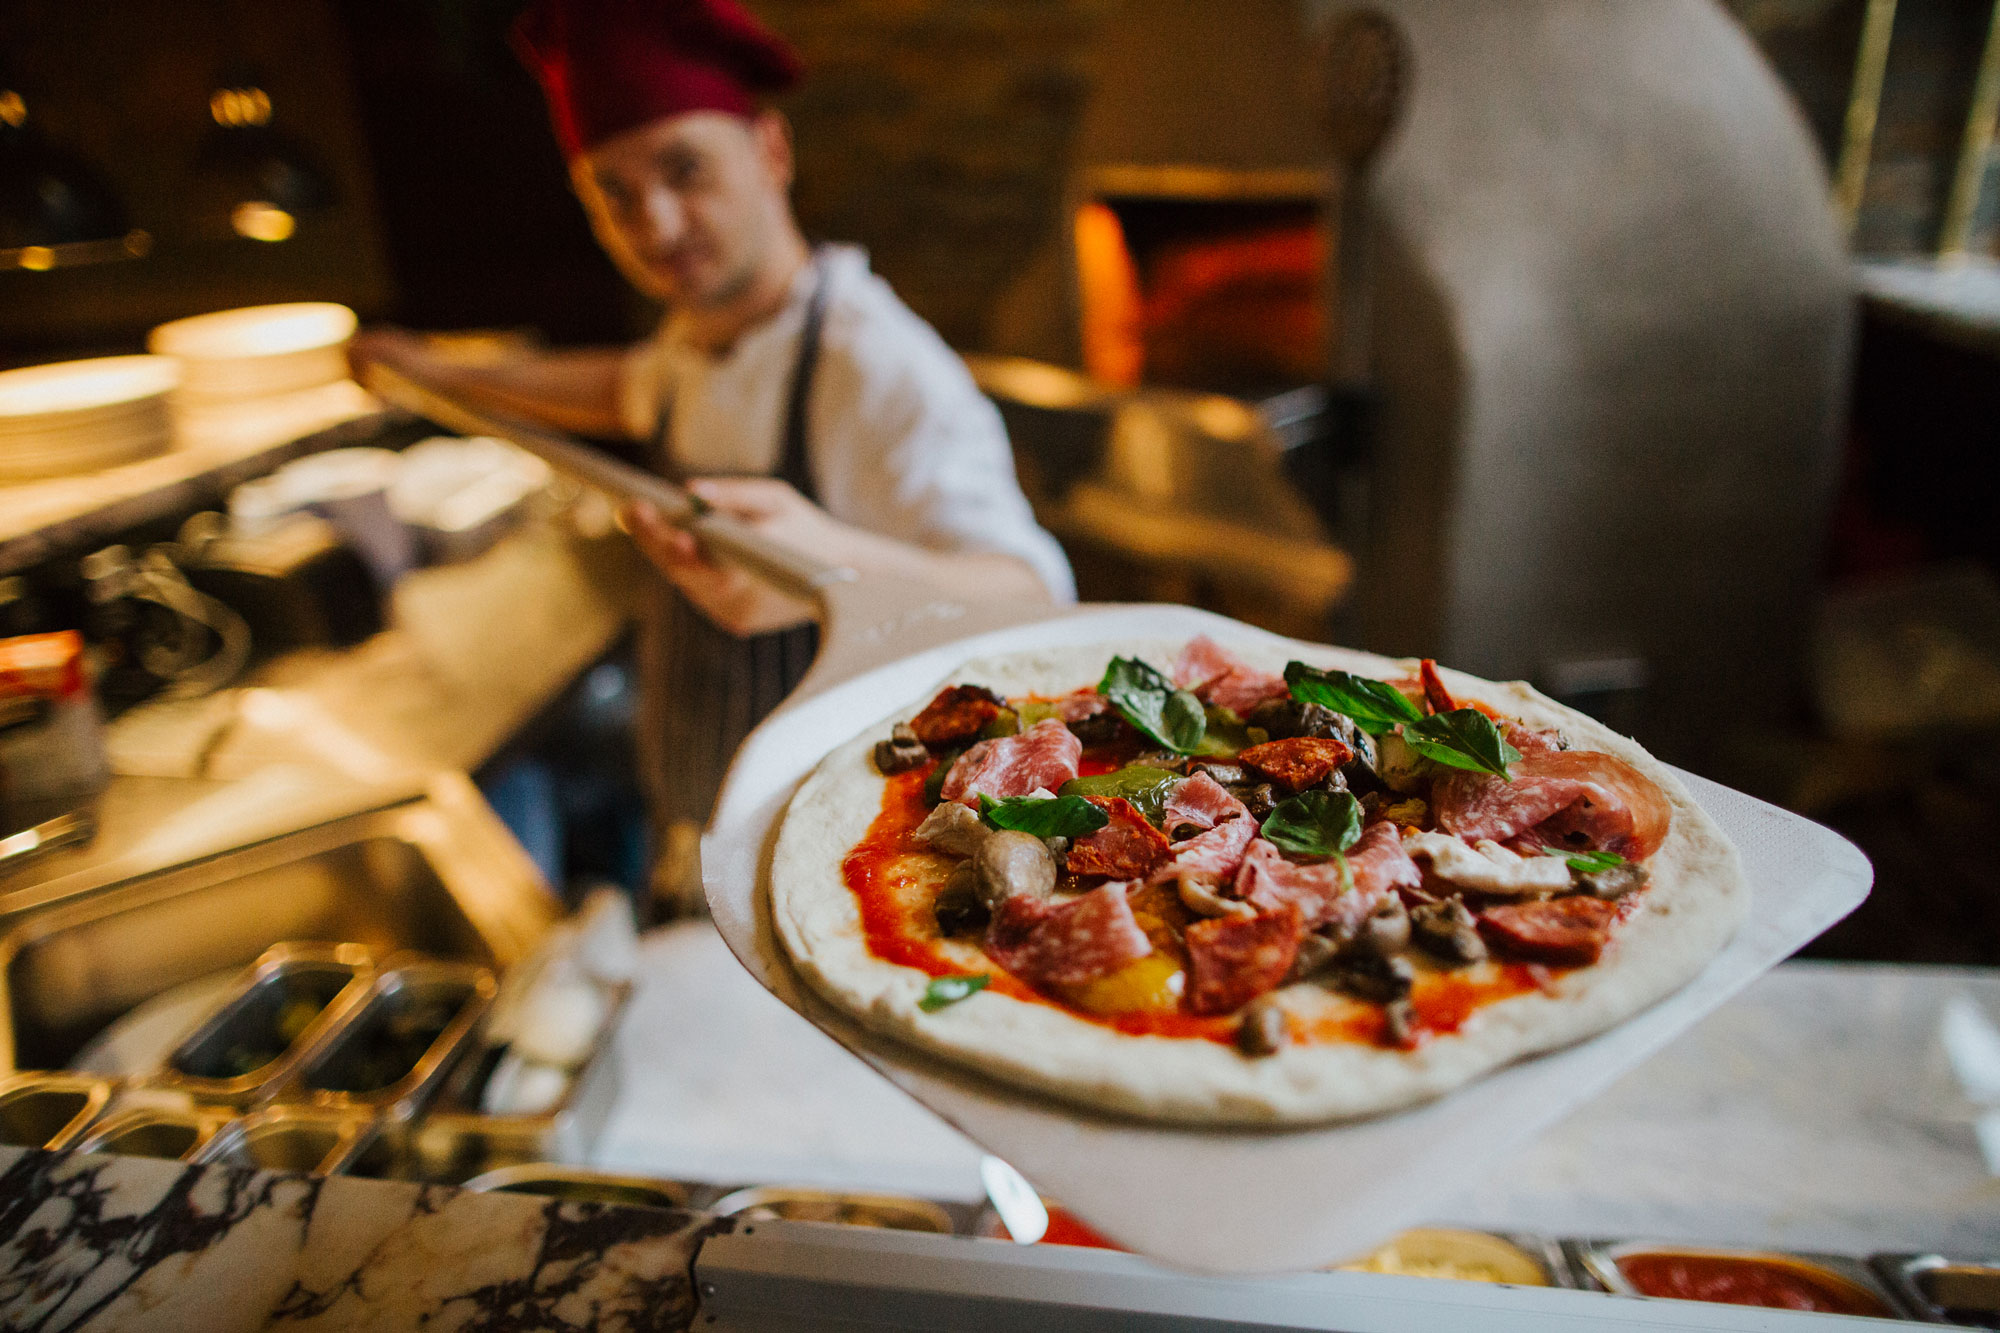 Pizzaiolo with wood-fired pizza at The Globe pub, restaurant and hotel in Warwick.jpg